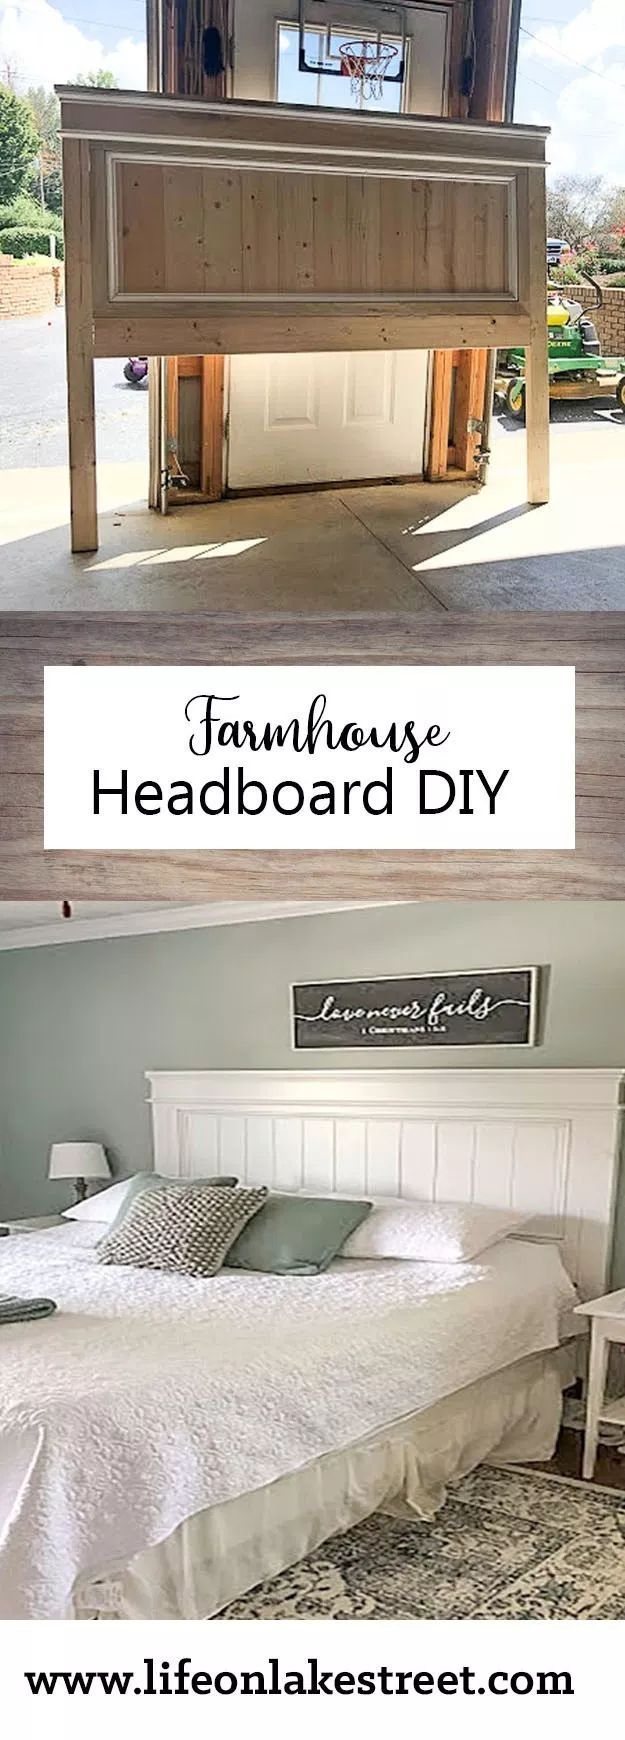 How to Build a Beautiful DIY Farmhouse Headboard- A Weekend Project - -   19 diy Headboard king ideas